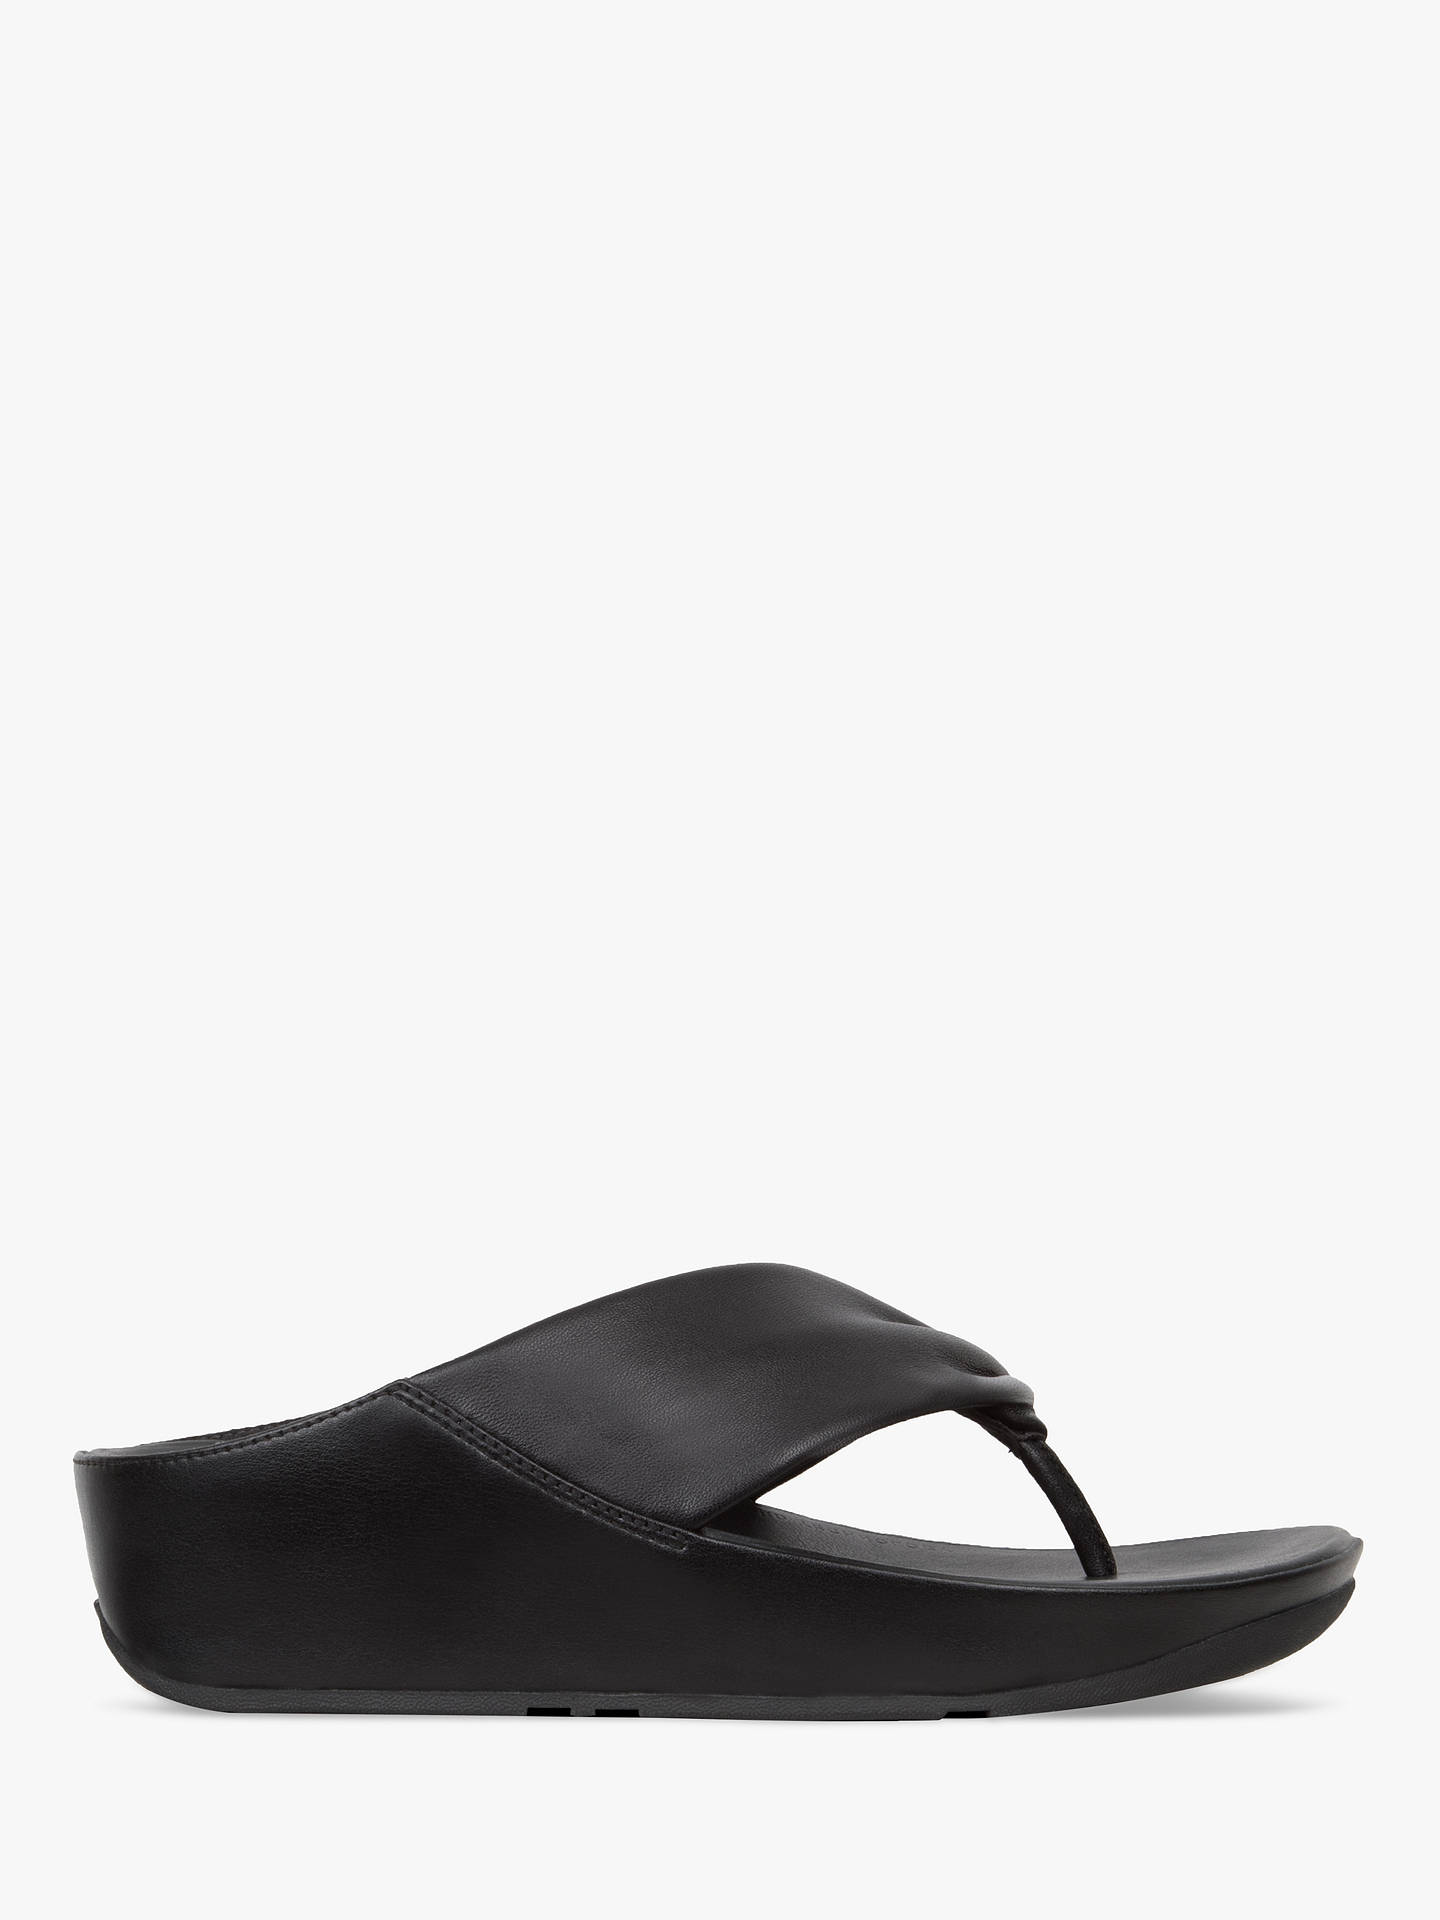 promo code 952d6 49f81 FitFlop Twiss Toe Post Sandals, Black Leather